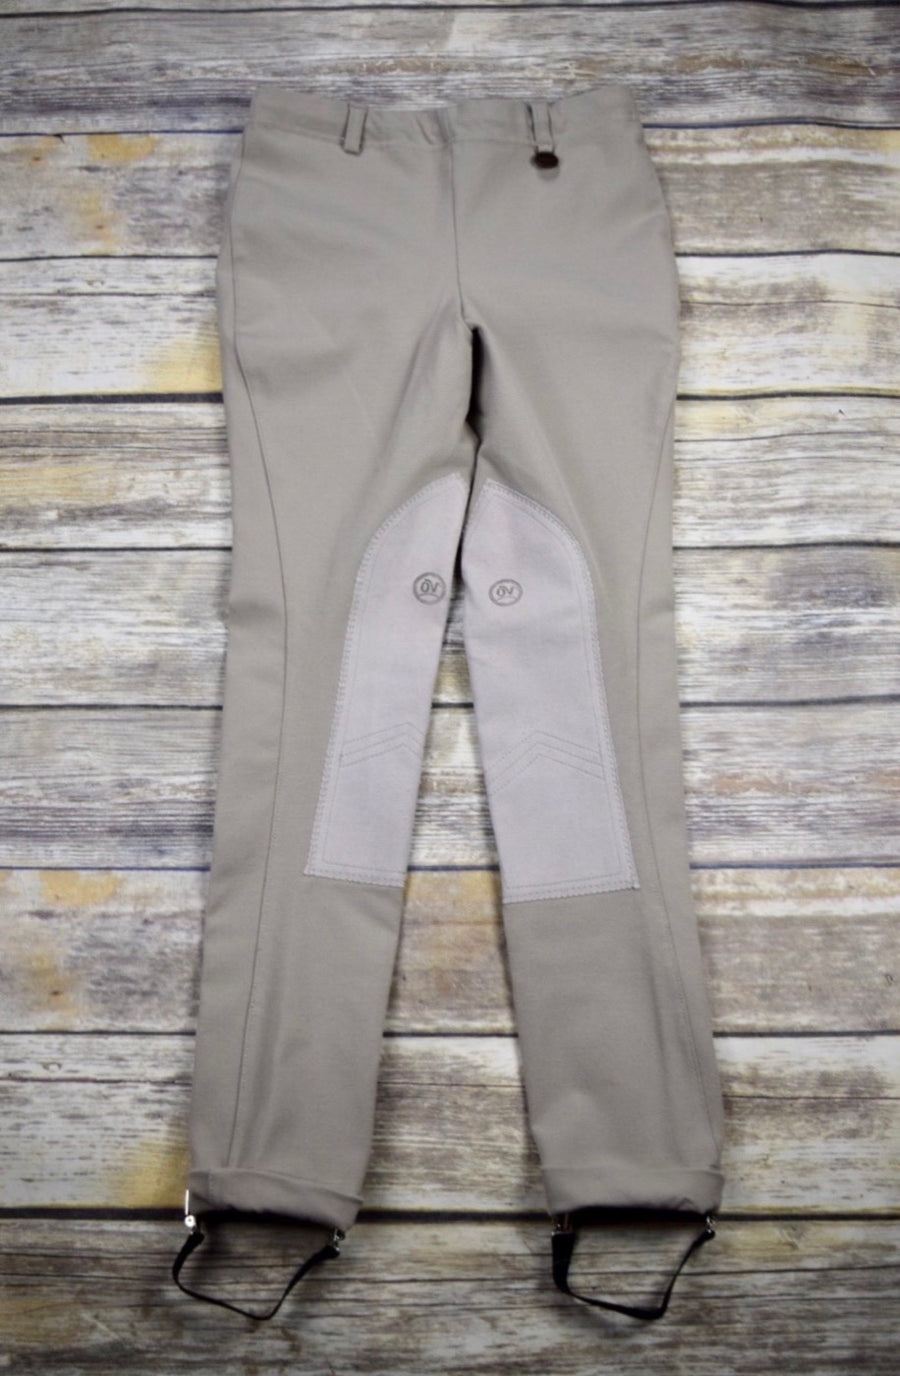 Ovation EuroWeave Pull-On Jods in Tan - Front View